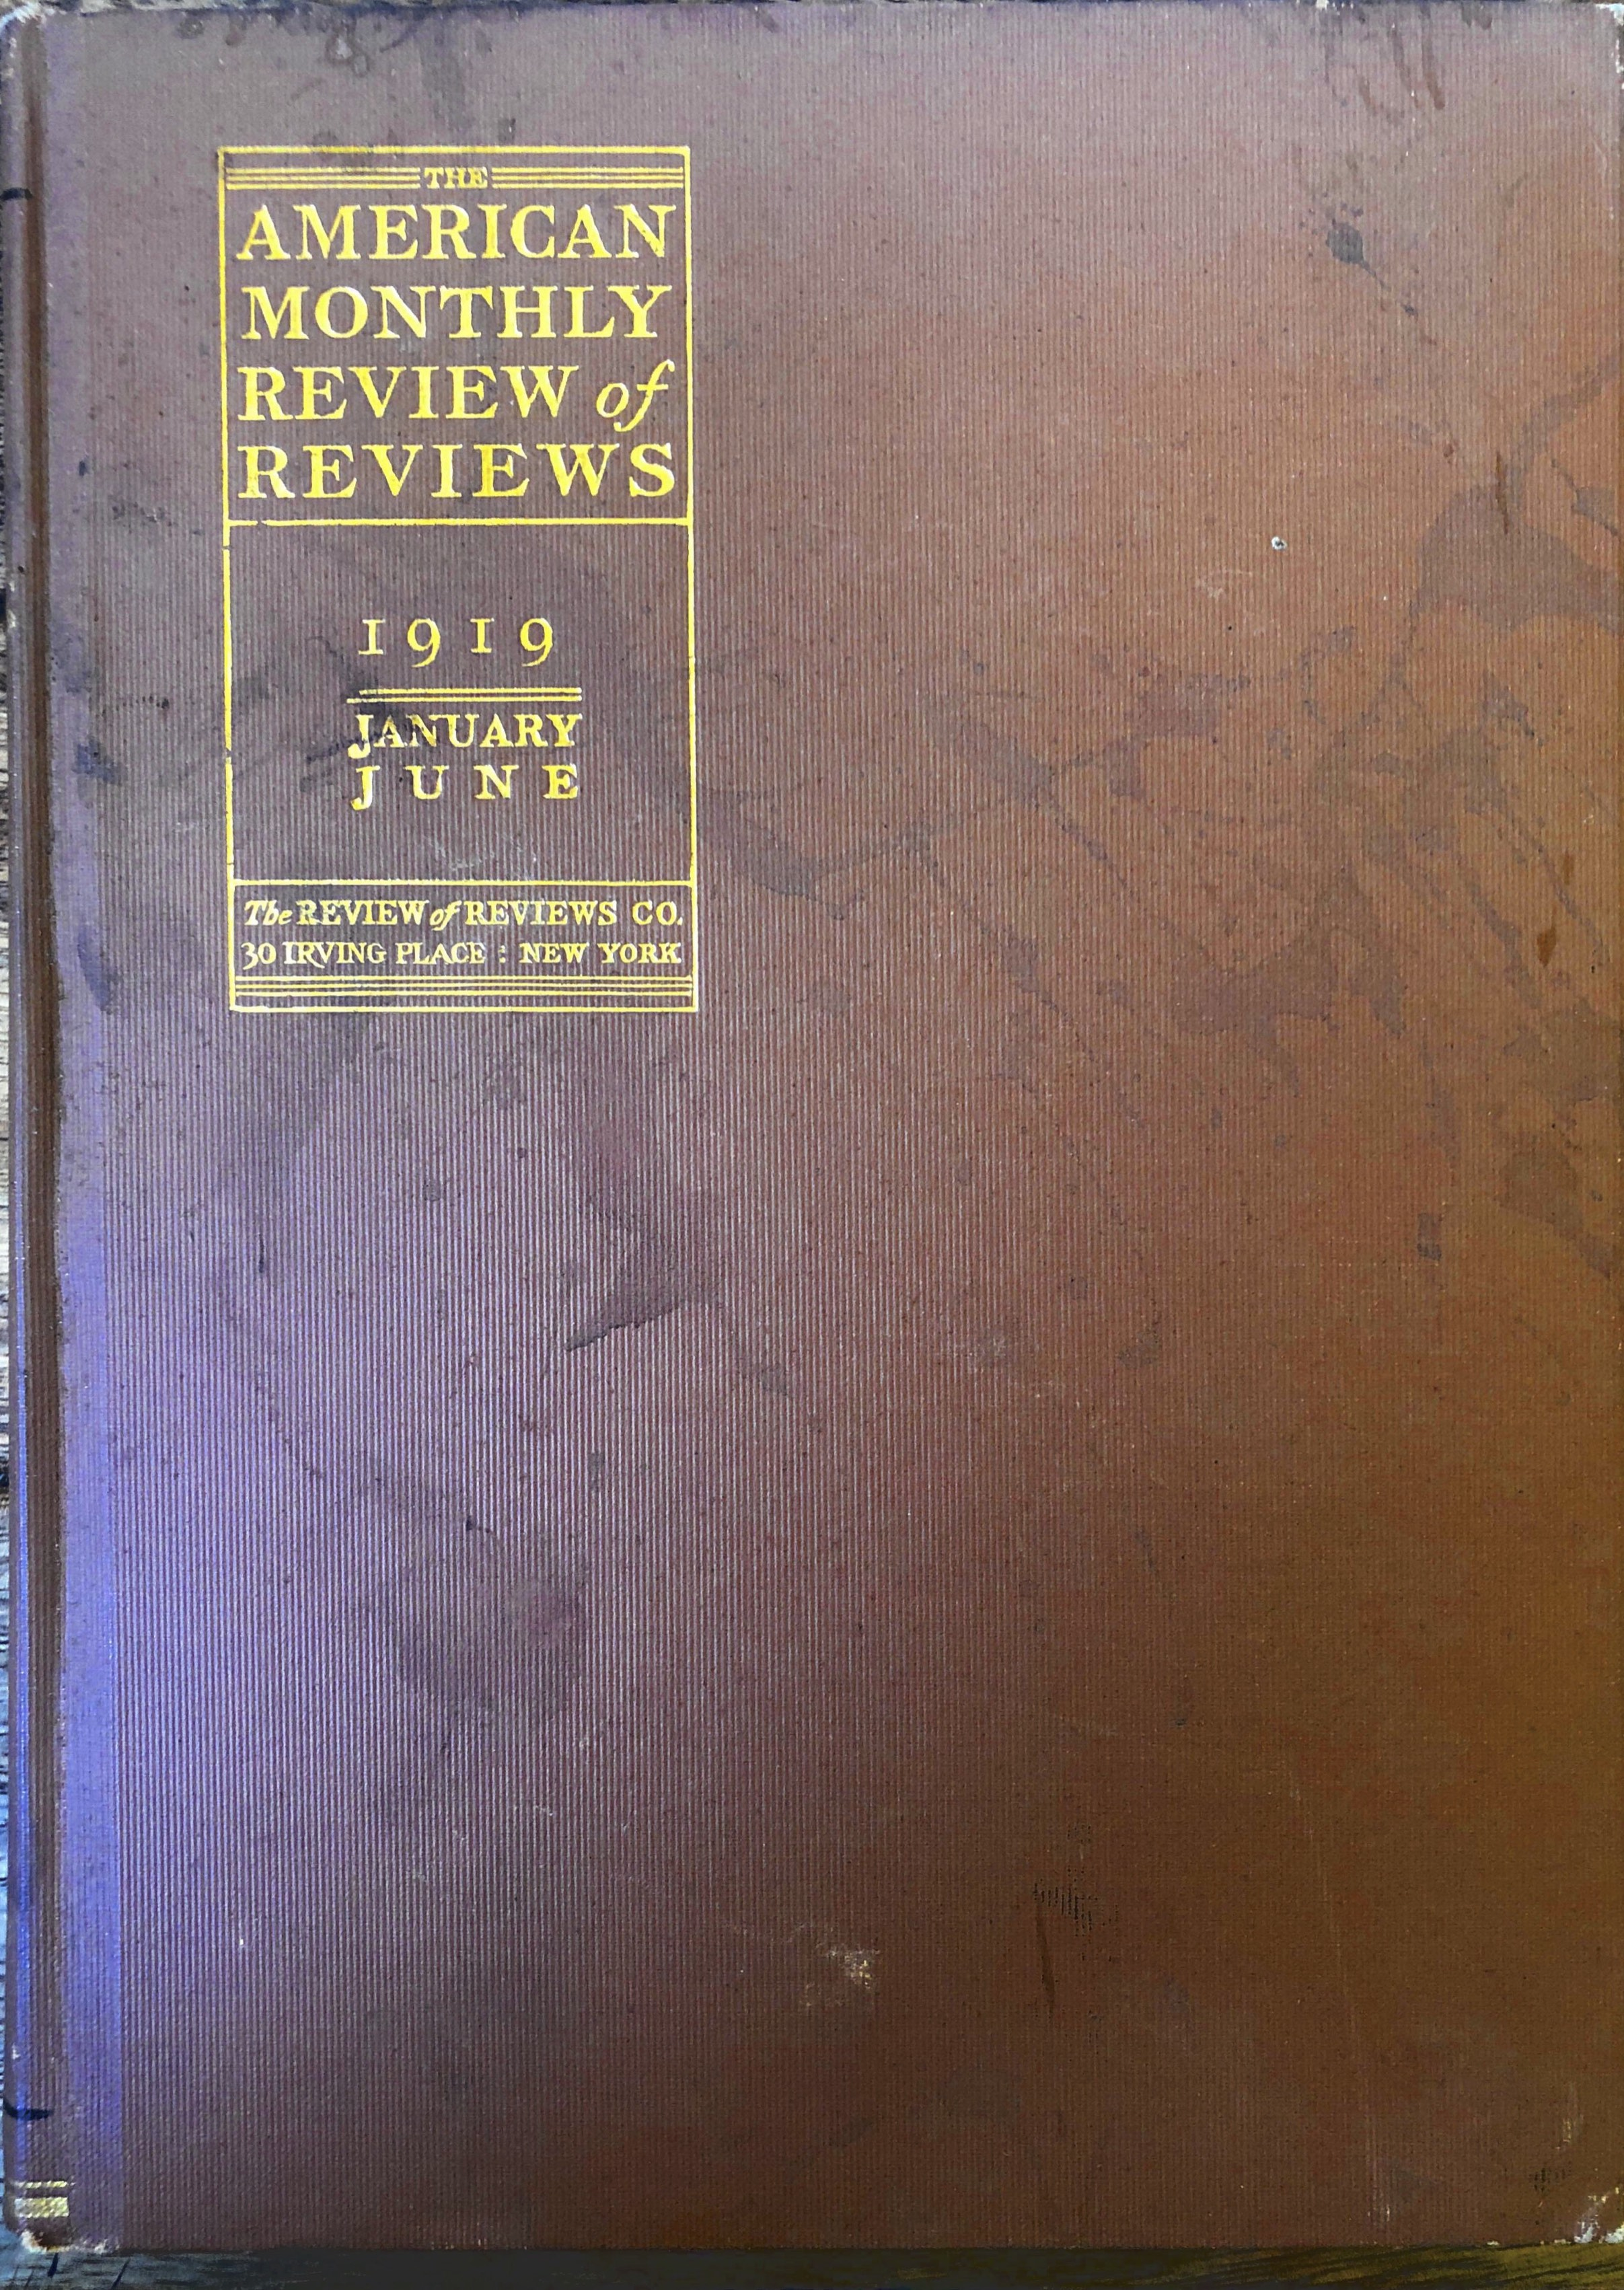 A Poet-Painter of Lebanon, The American Review of Reviews, Edited by Albert Shaw, New York: The Review of Reviews Company, vol. LIX, January-June 1919, p. 212.